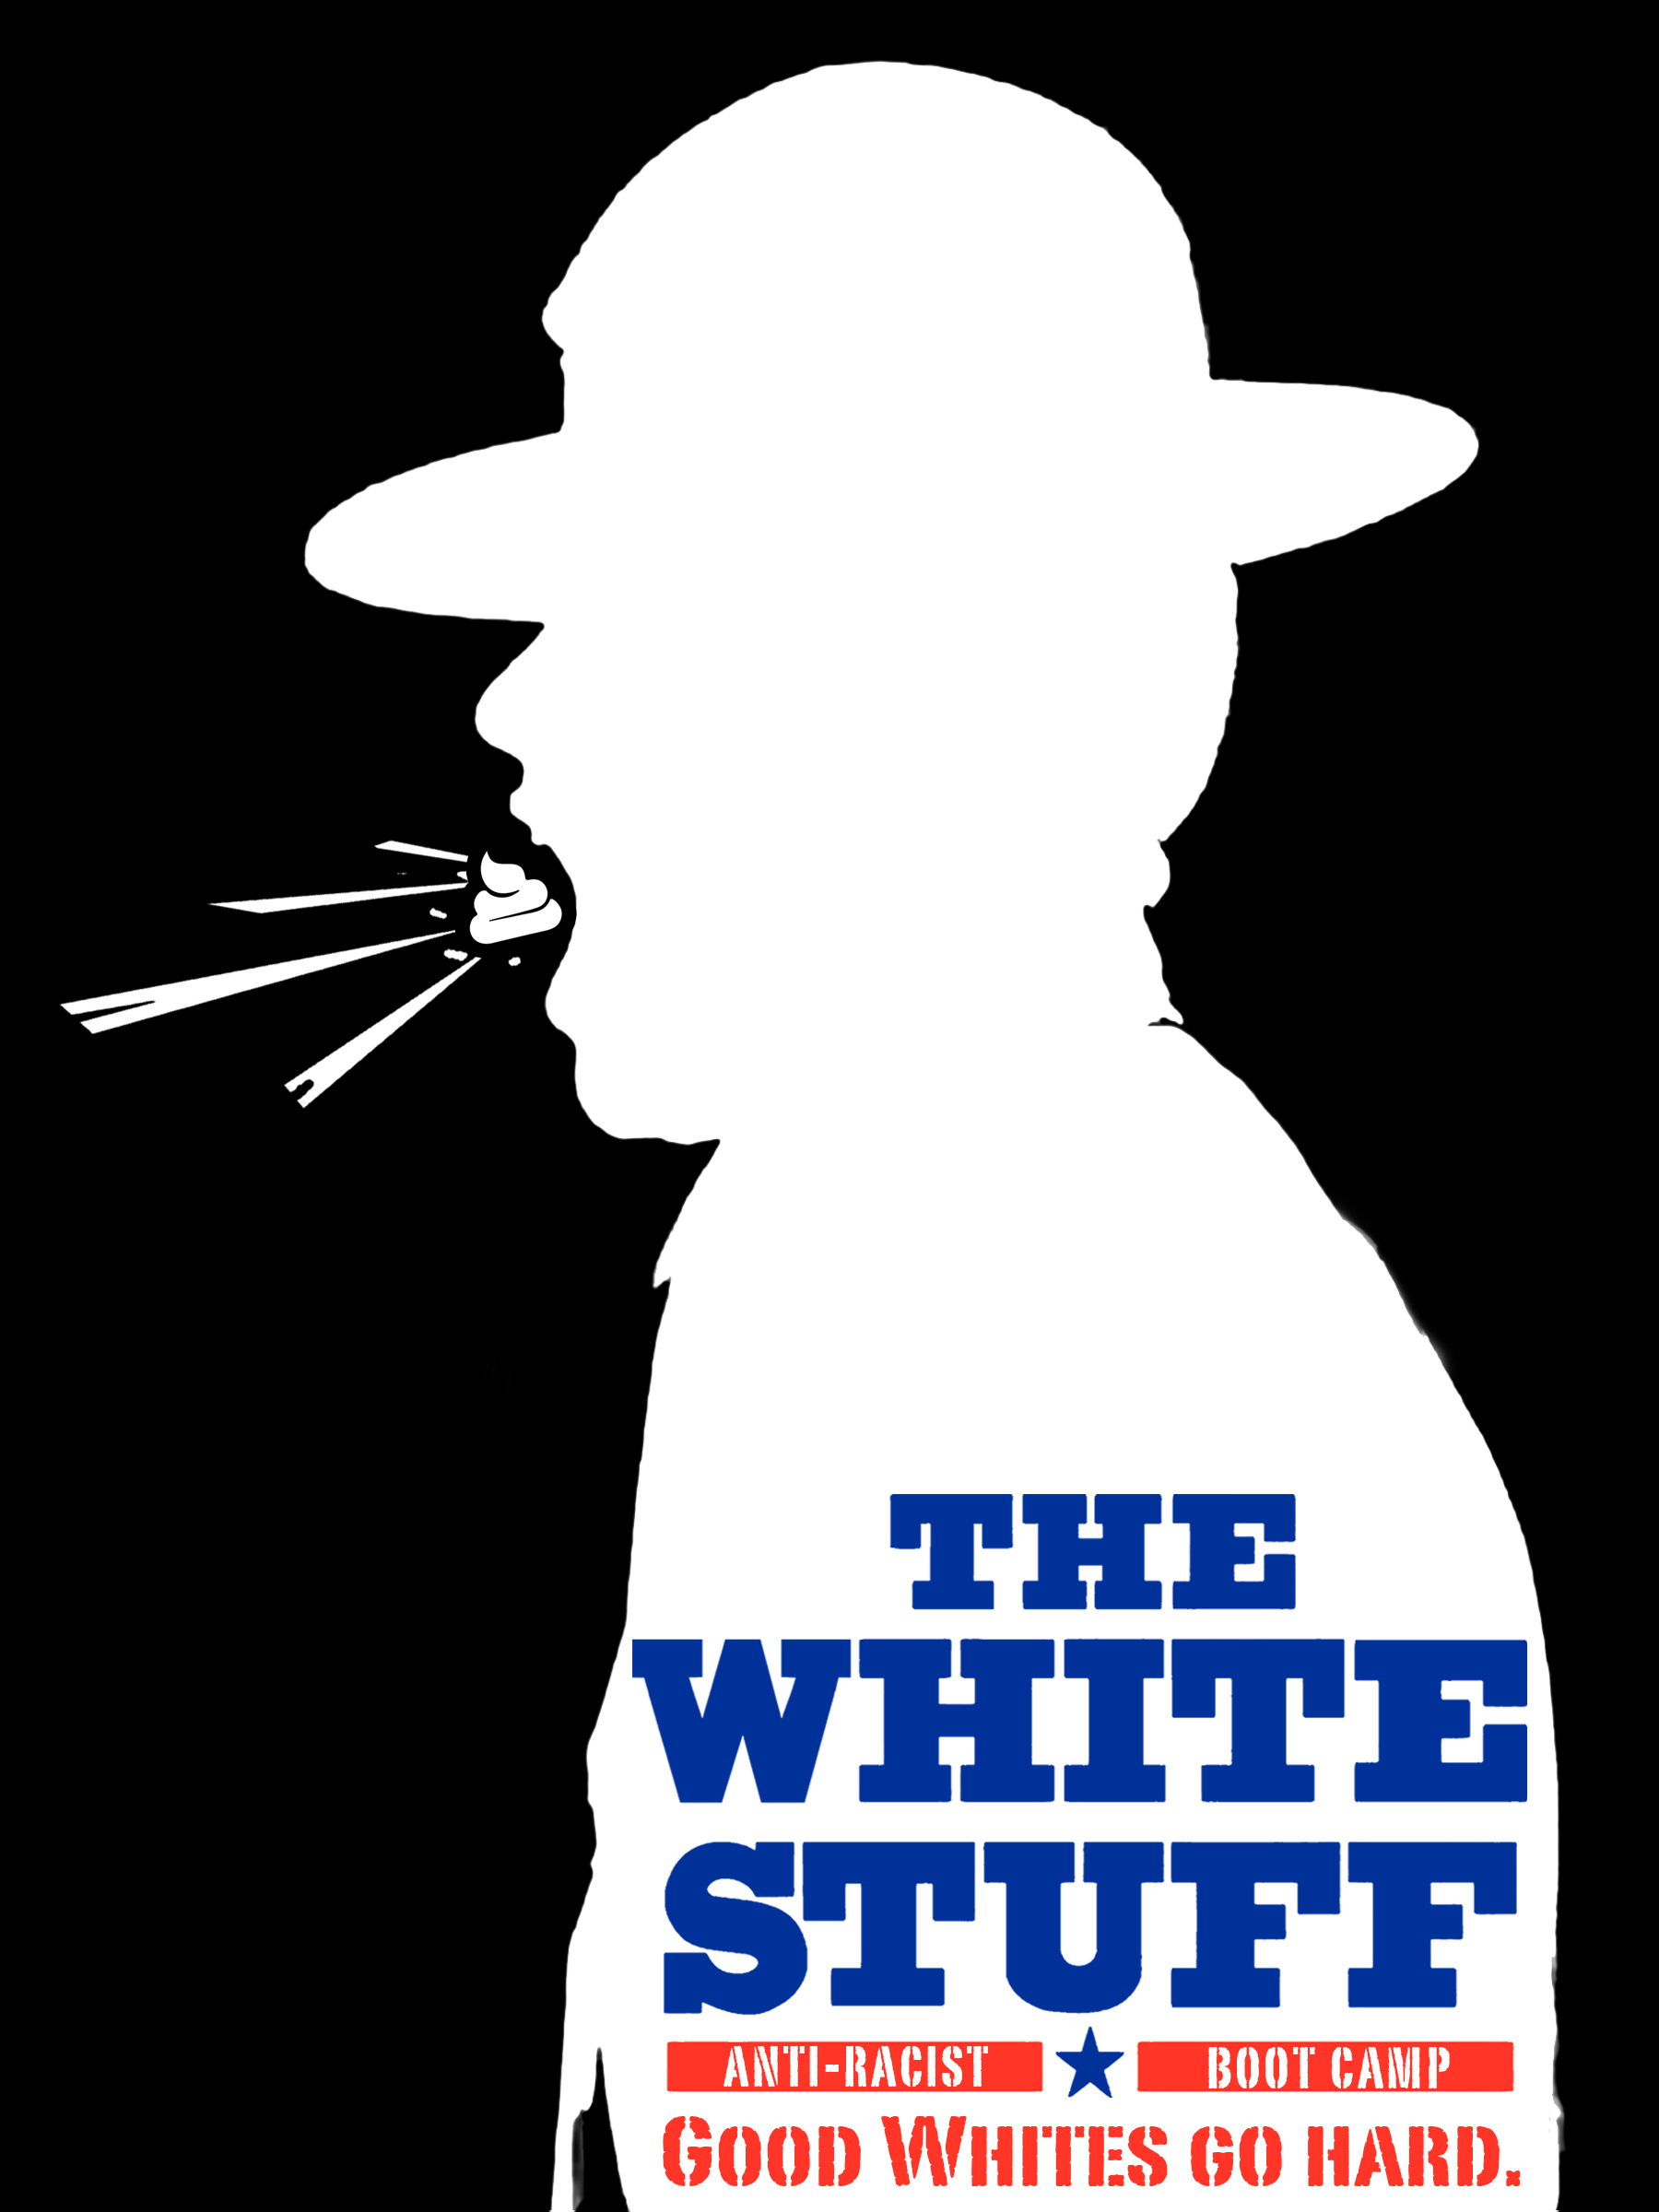 White silhouette of a man in a hat with a swirly turd going into or out of his mouth